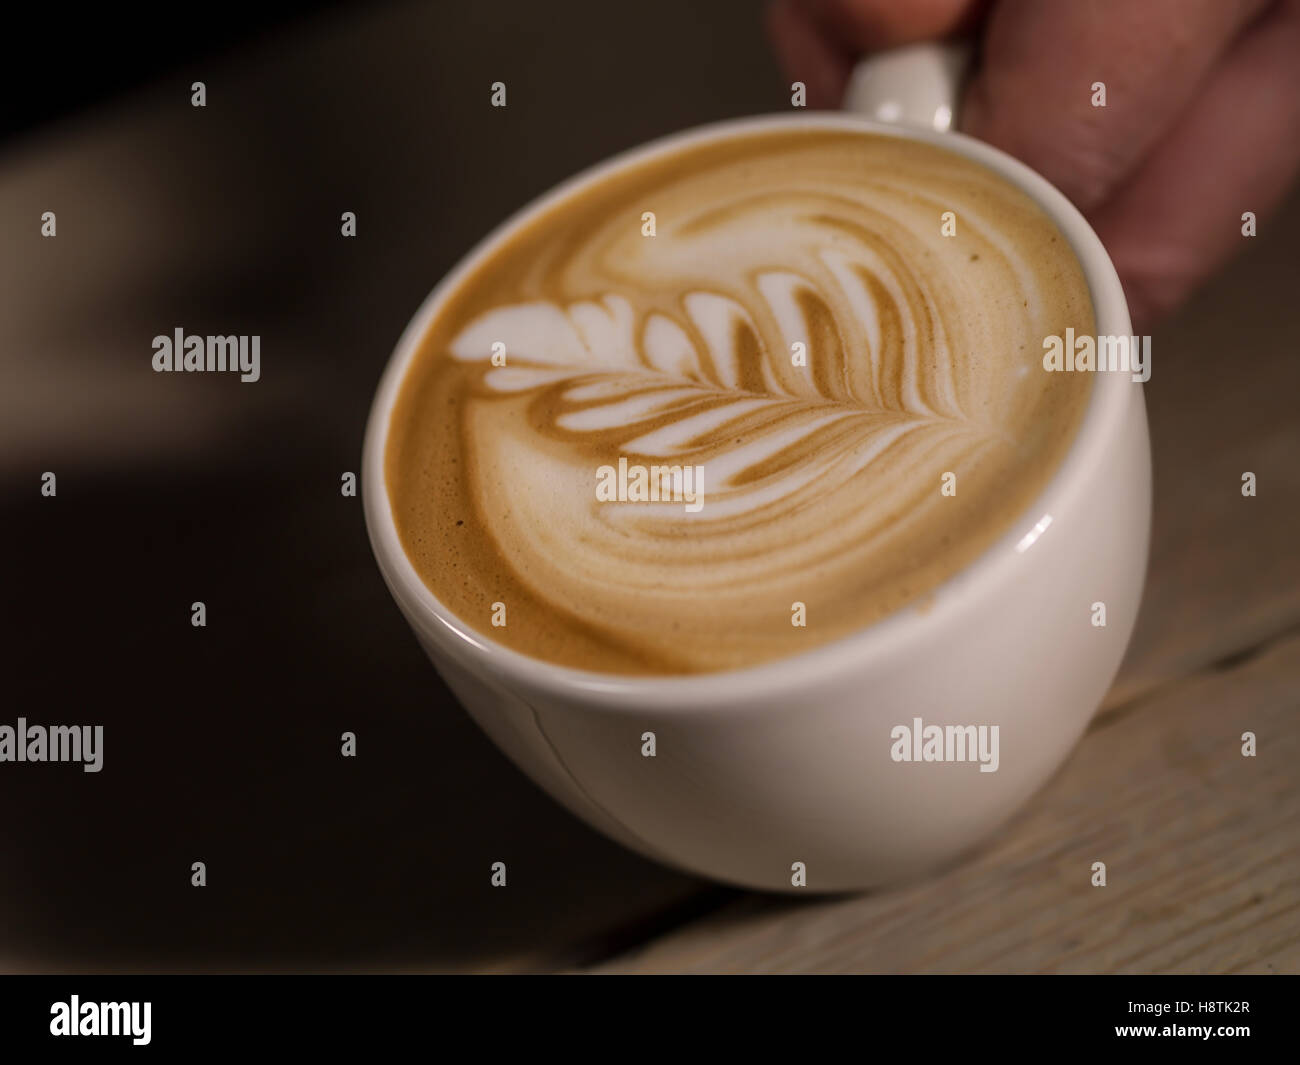 Making latte Art on a Cappucinno on a dark wooden background - Stock Image